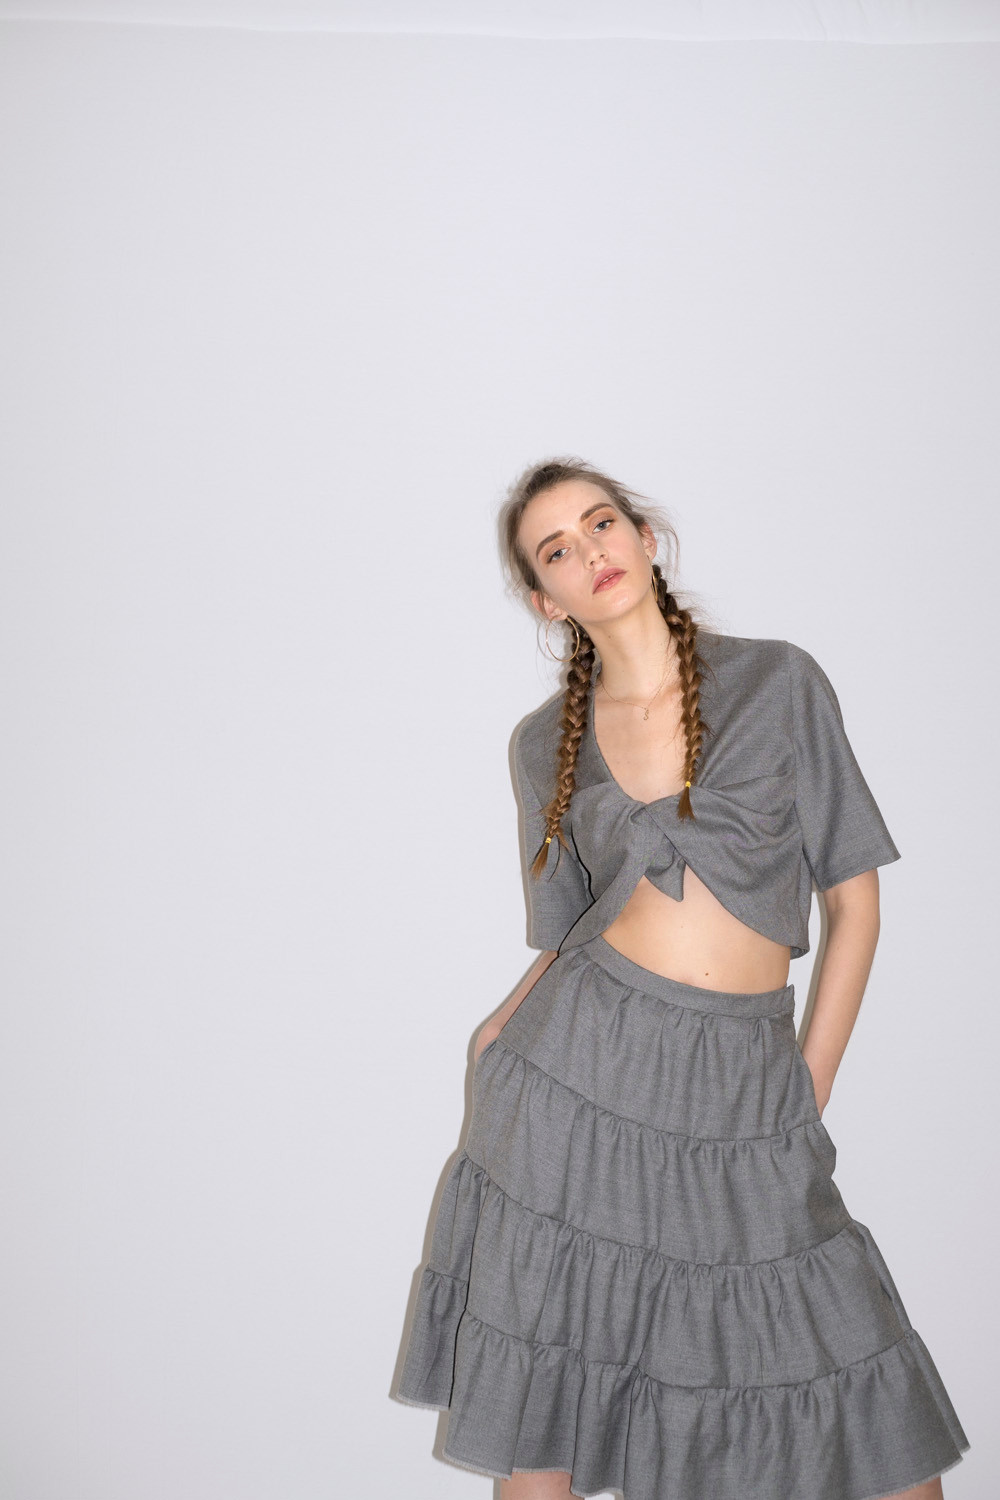 This Is The Uniform grey top and skirt